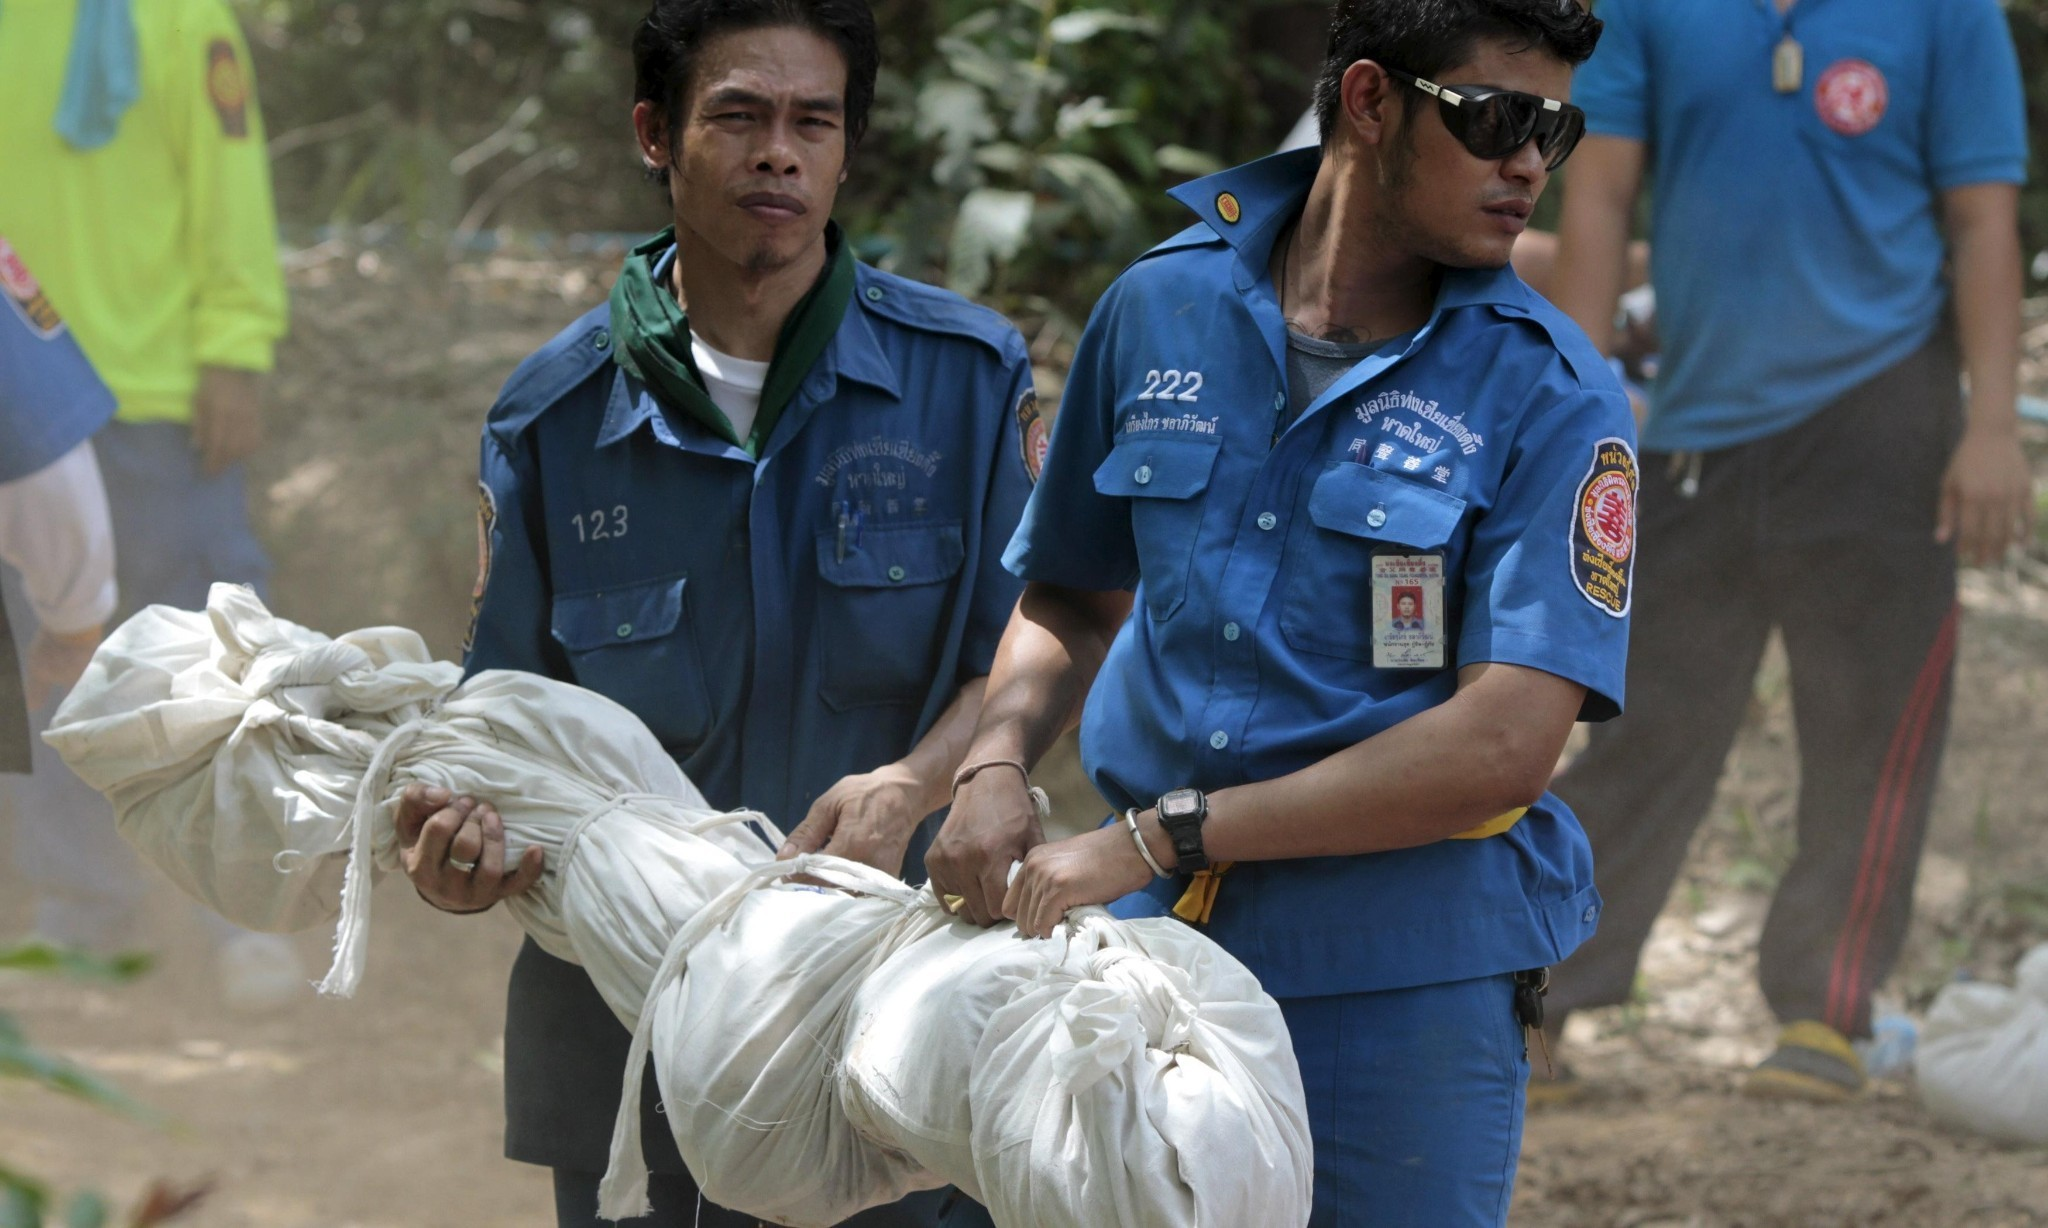 Thailand convicts traffickers after 2015 mass graves discovery